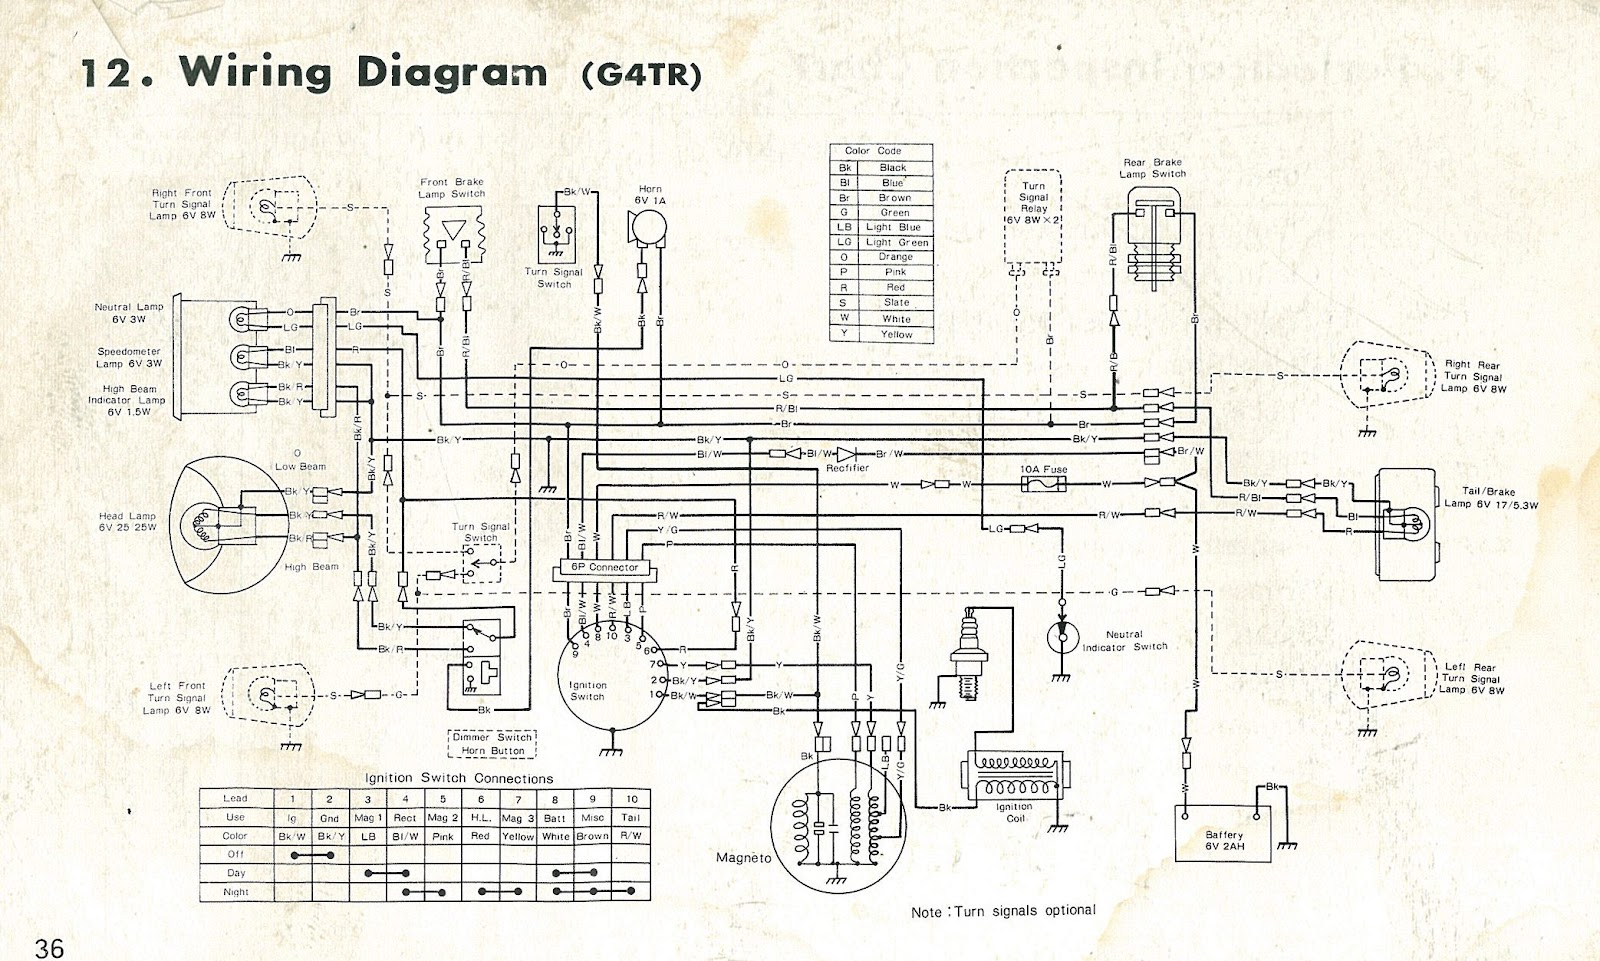 hight resolution of g4 wiring diagram wiring schematic diagram 8 insuranceblog asiarestoring a 1972 kawasaki g4 tr b motorcycle